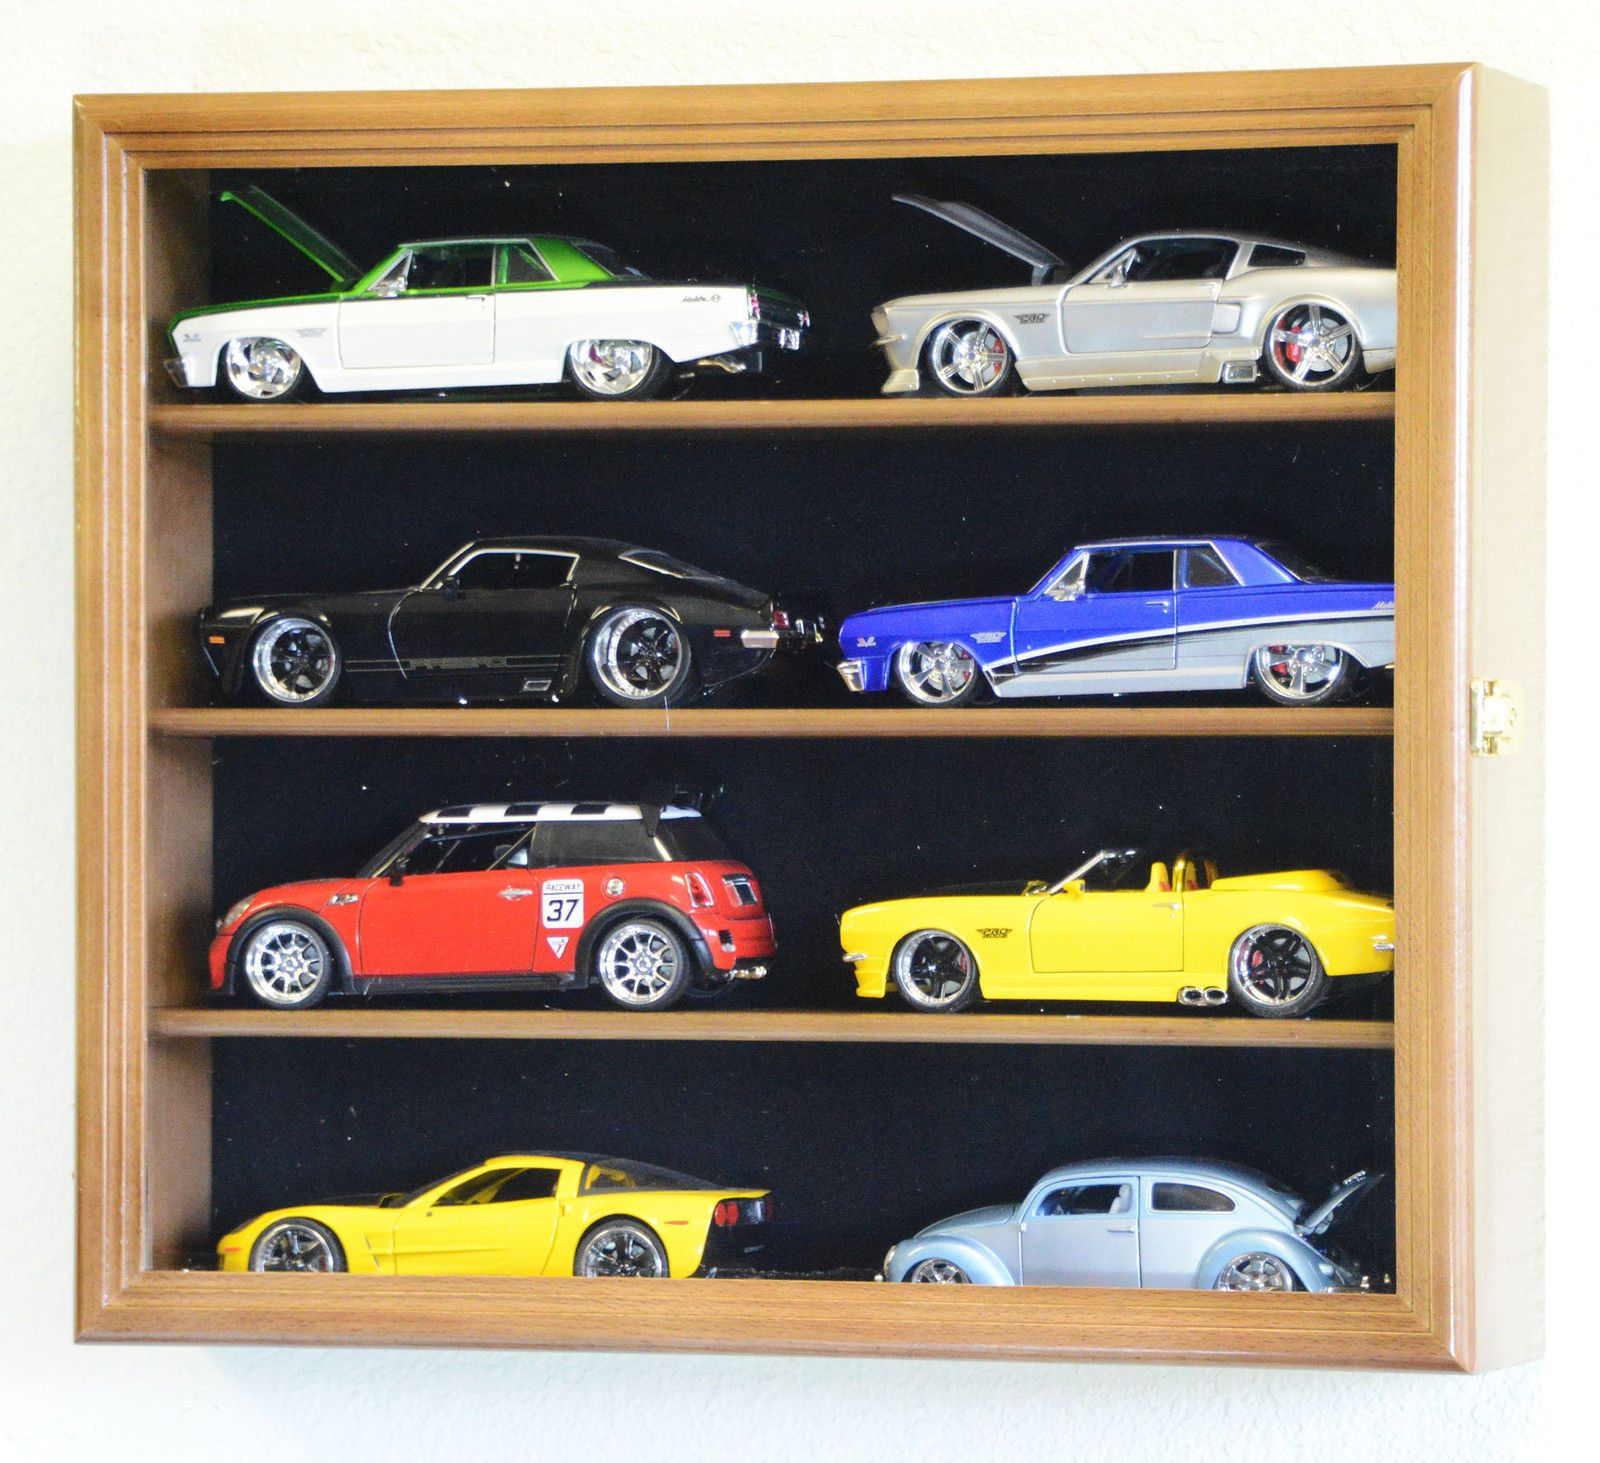 NEW DELUXE NASCAR MODEL 1//24th DIE CAST DISPLAY CASE